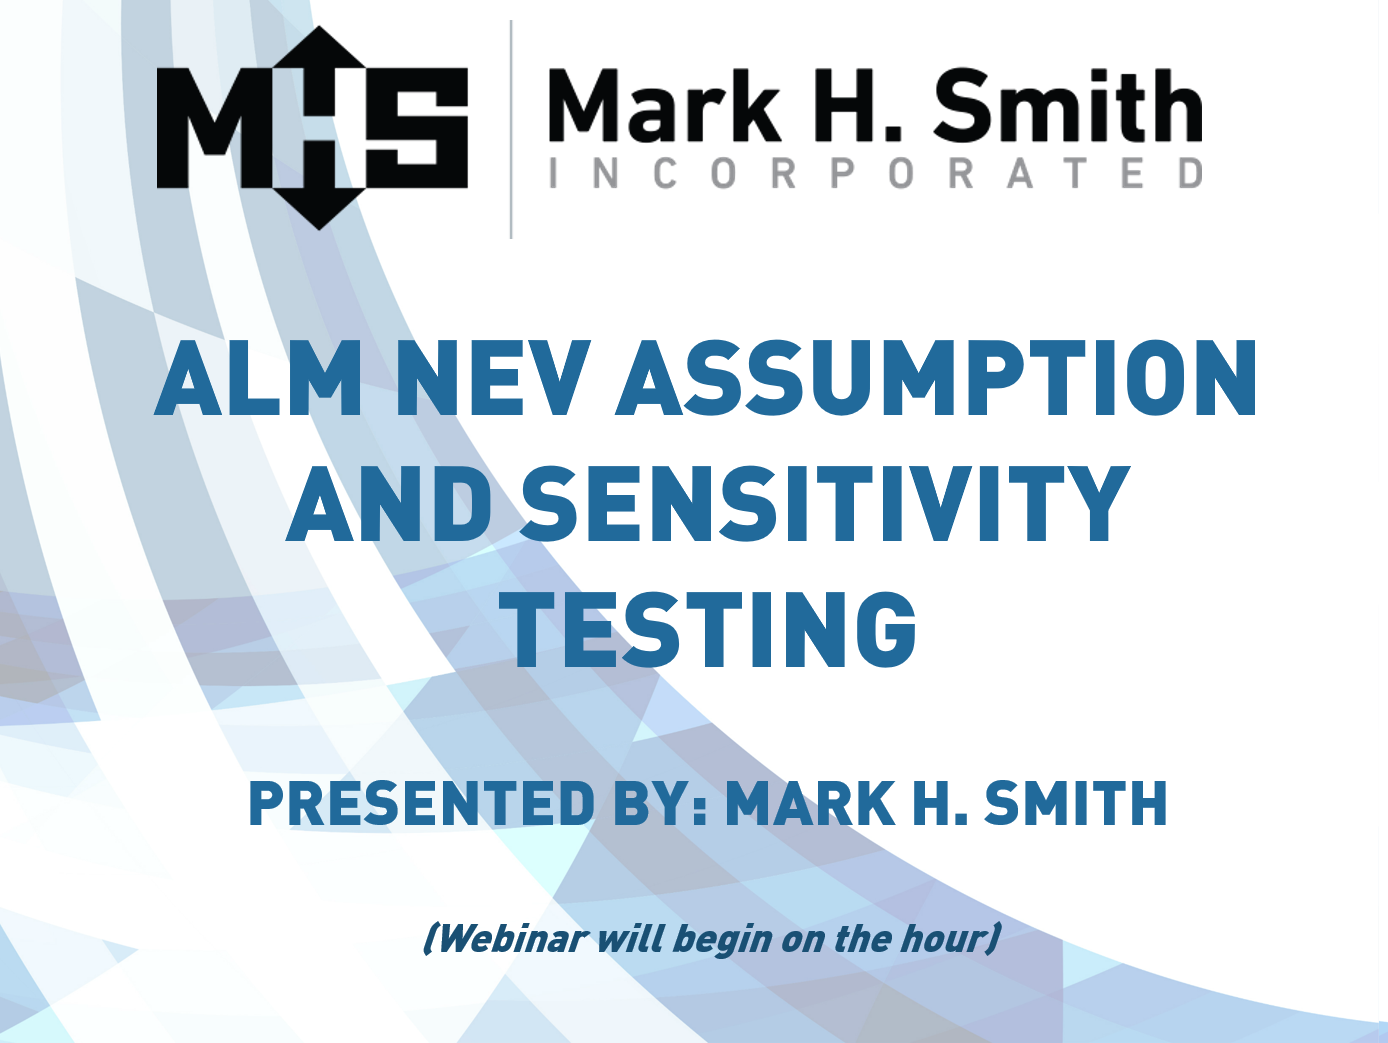 ALM NEV Assumption and Sensitivity Testing